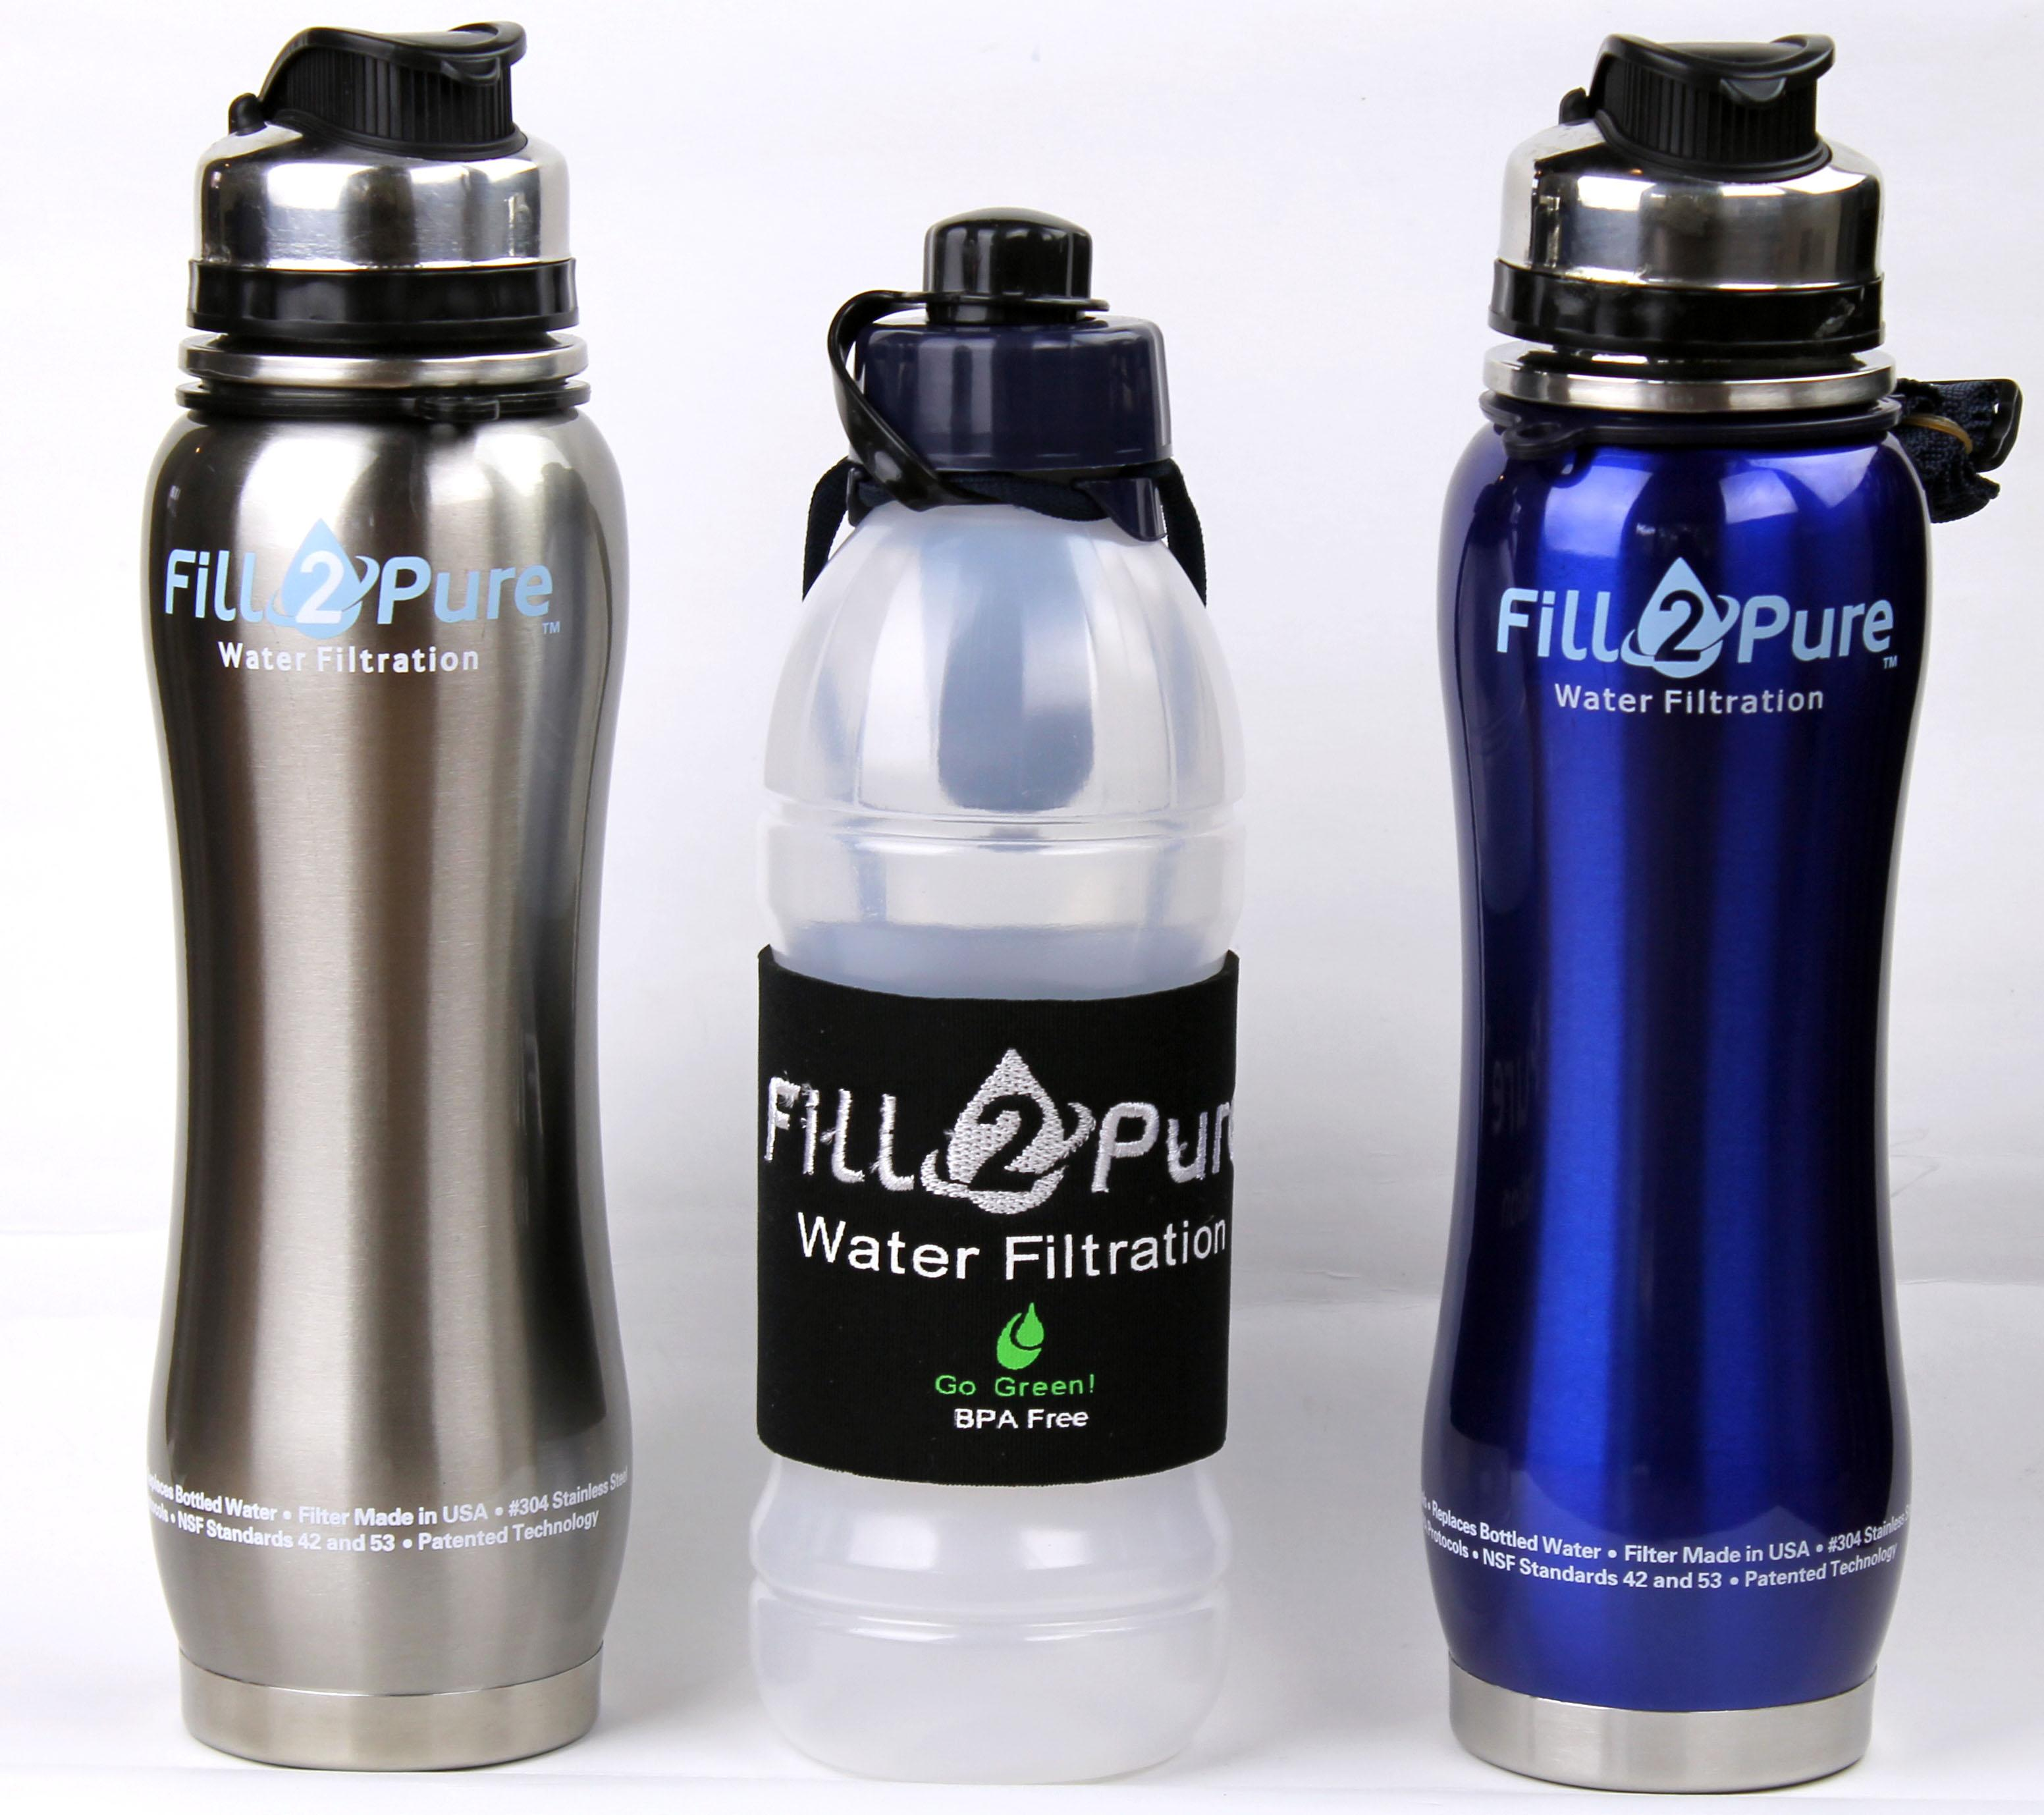 Fill2pure 800 Ml Red Stainless Steel Water Filter Bottle